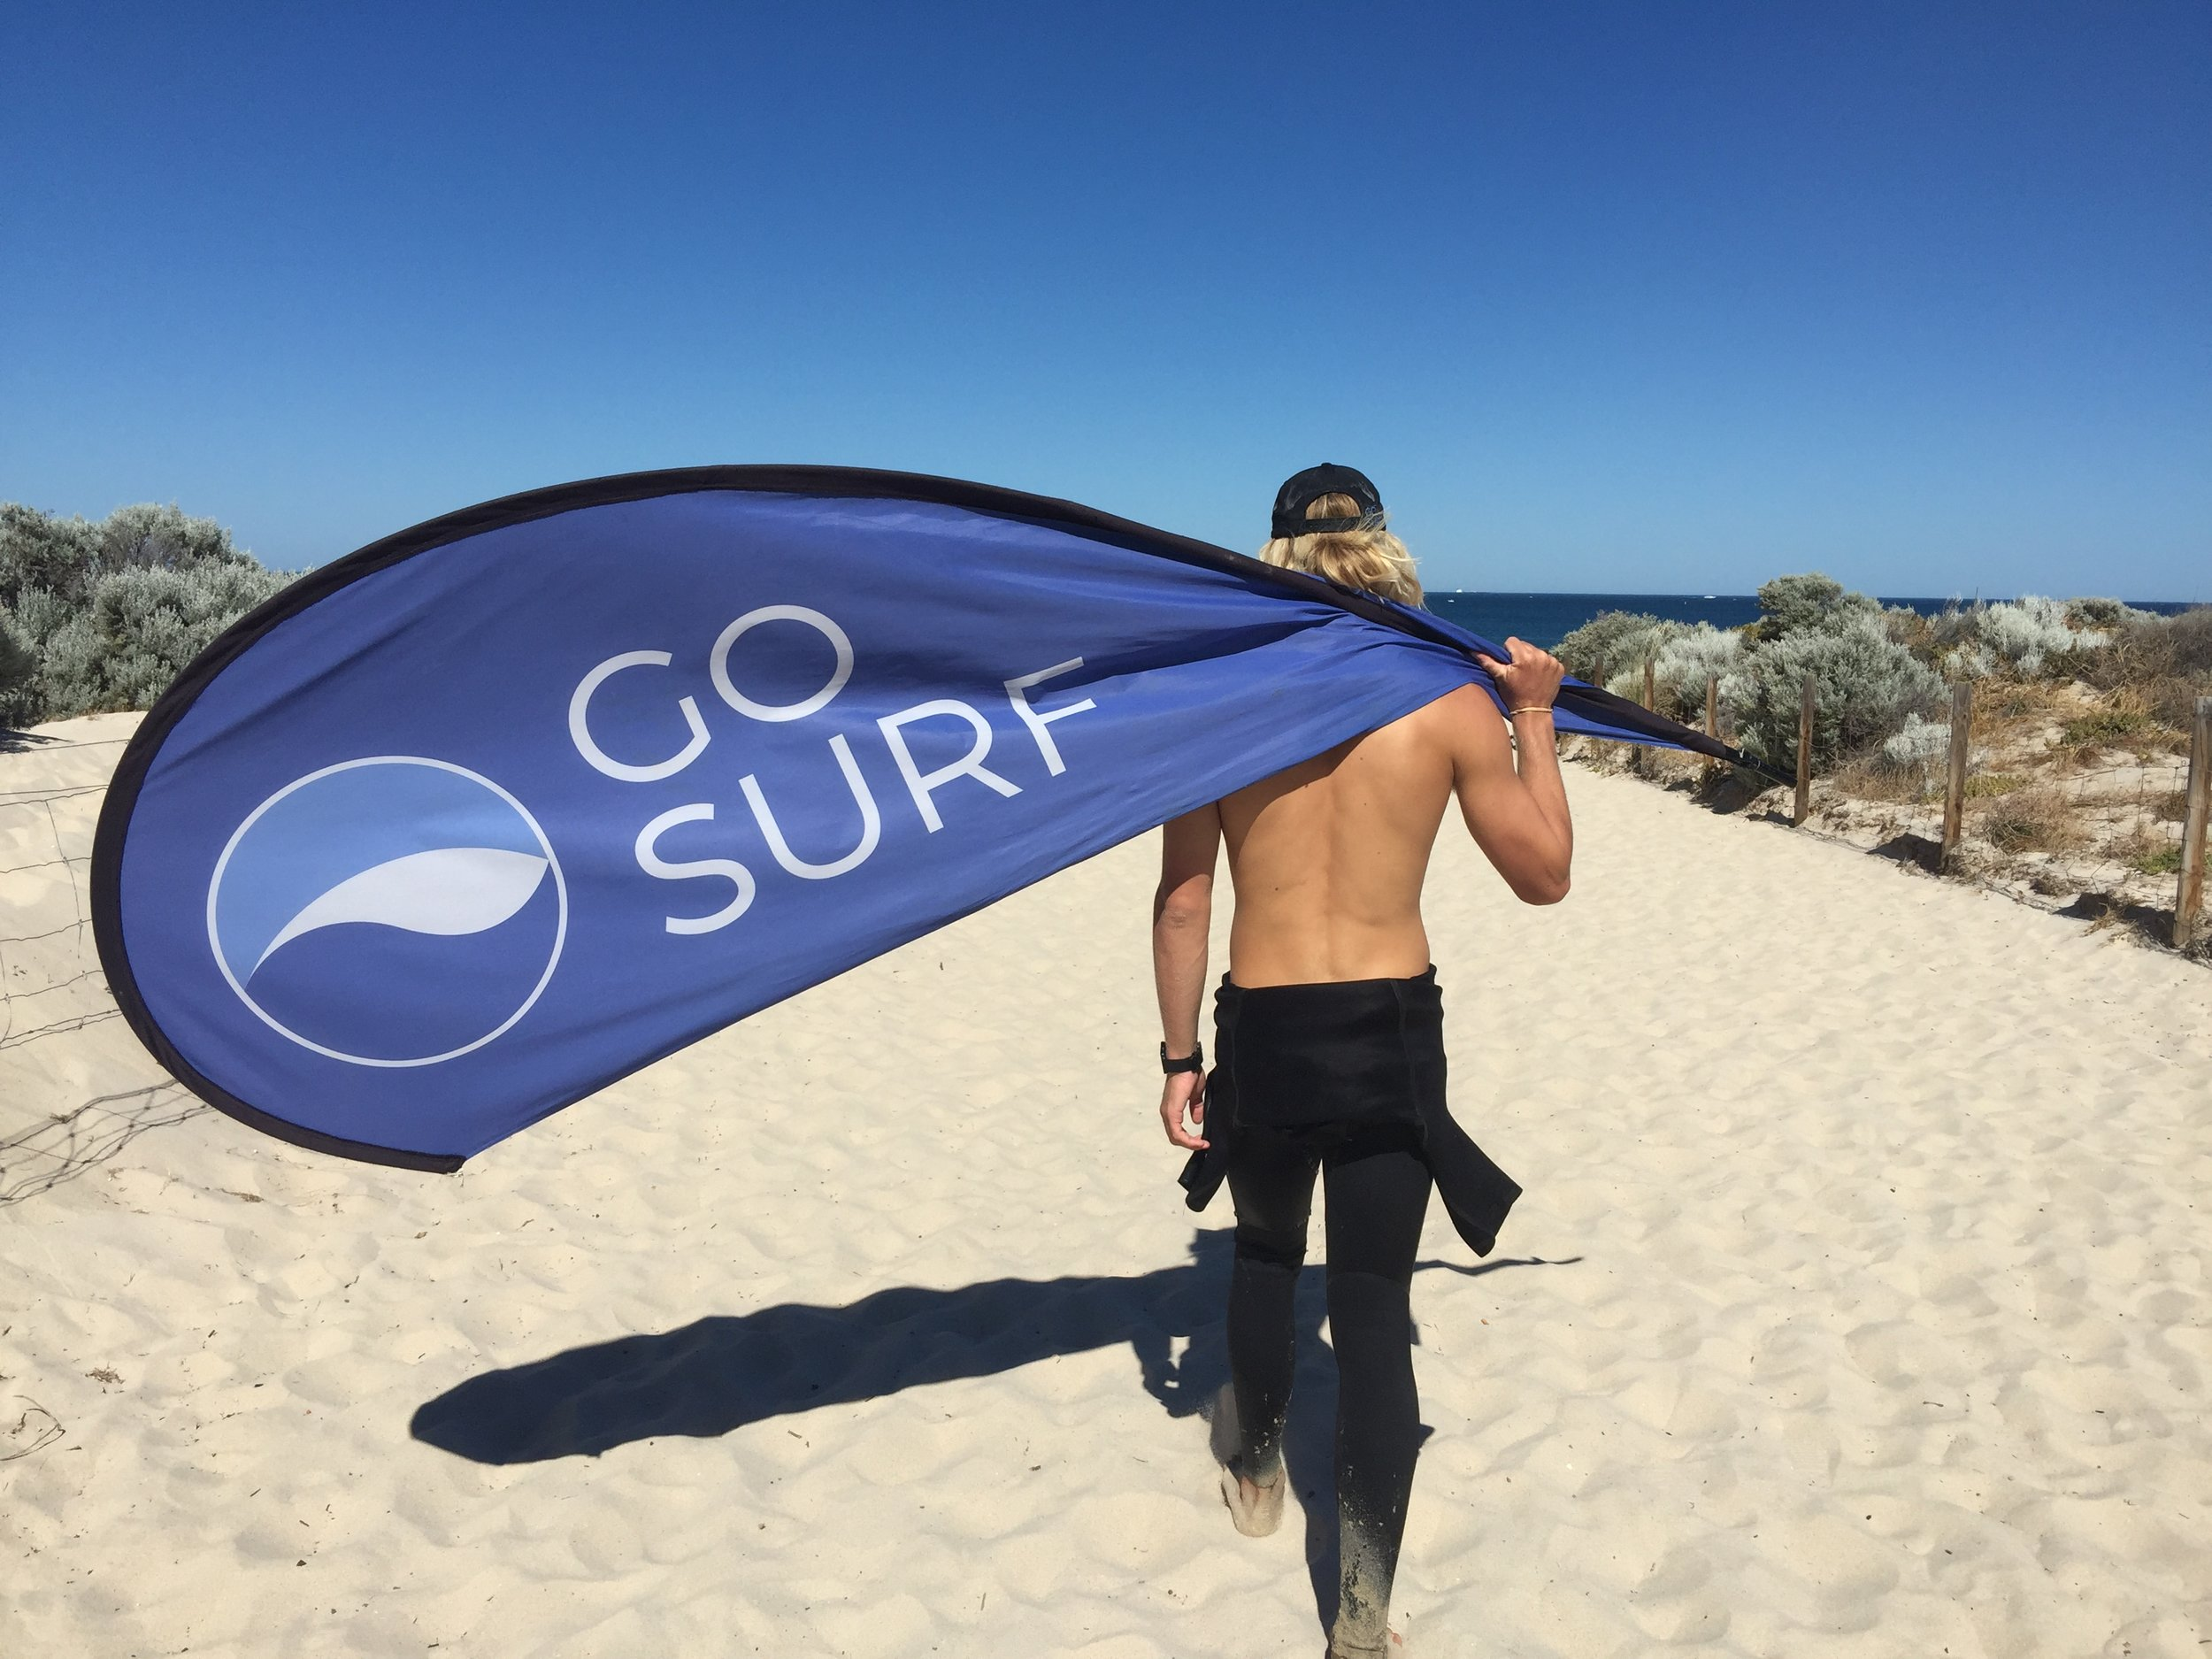 Surfboard hire perth   Find out more »